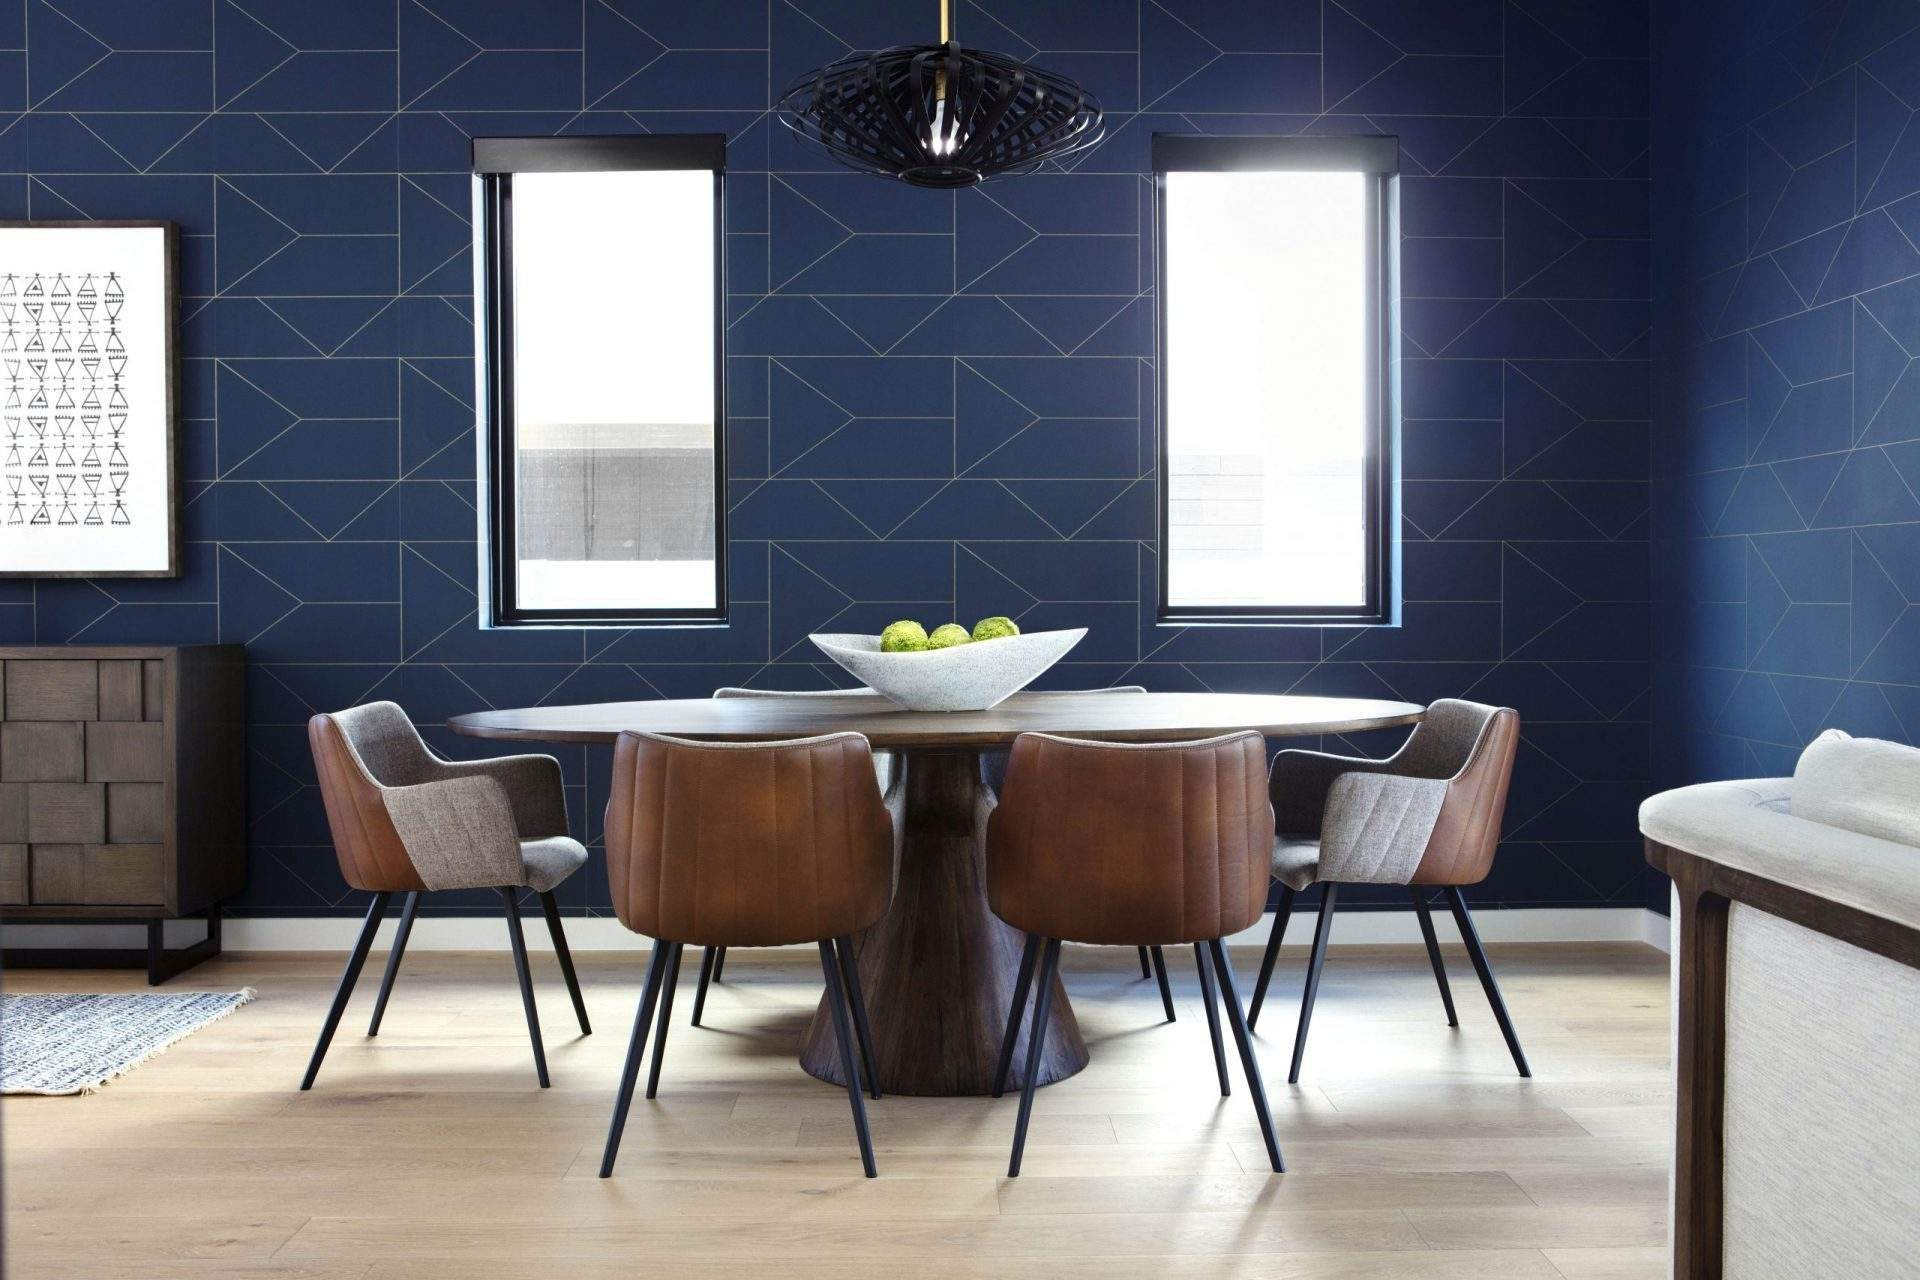 travis heights | dining area with blue geometric wallpaper| austin, texas